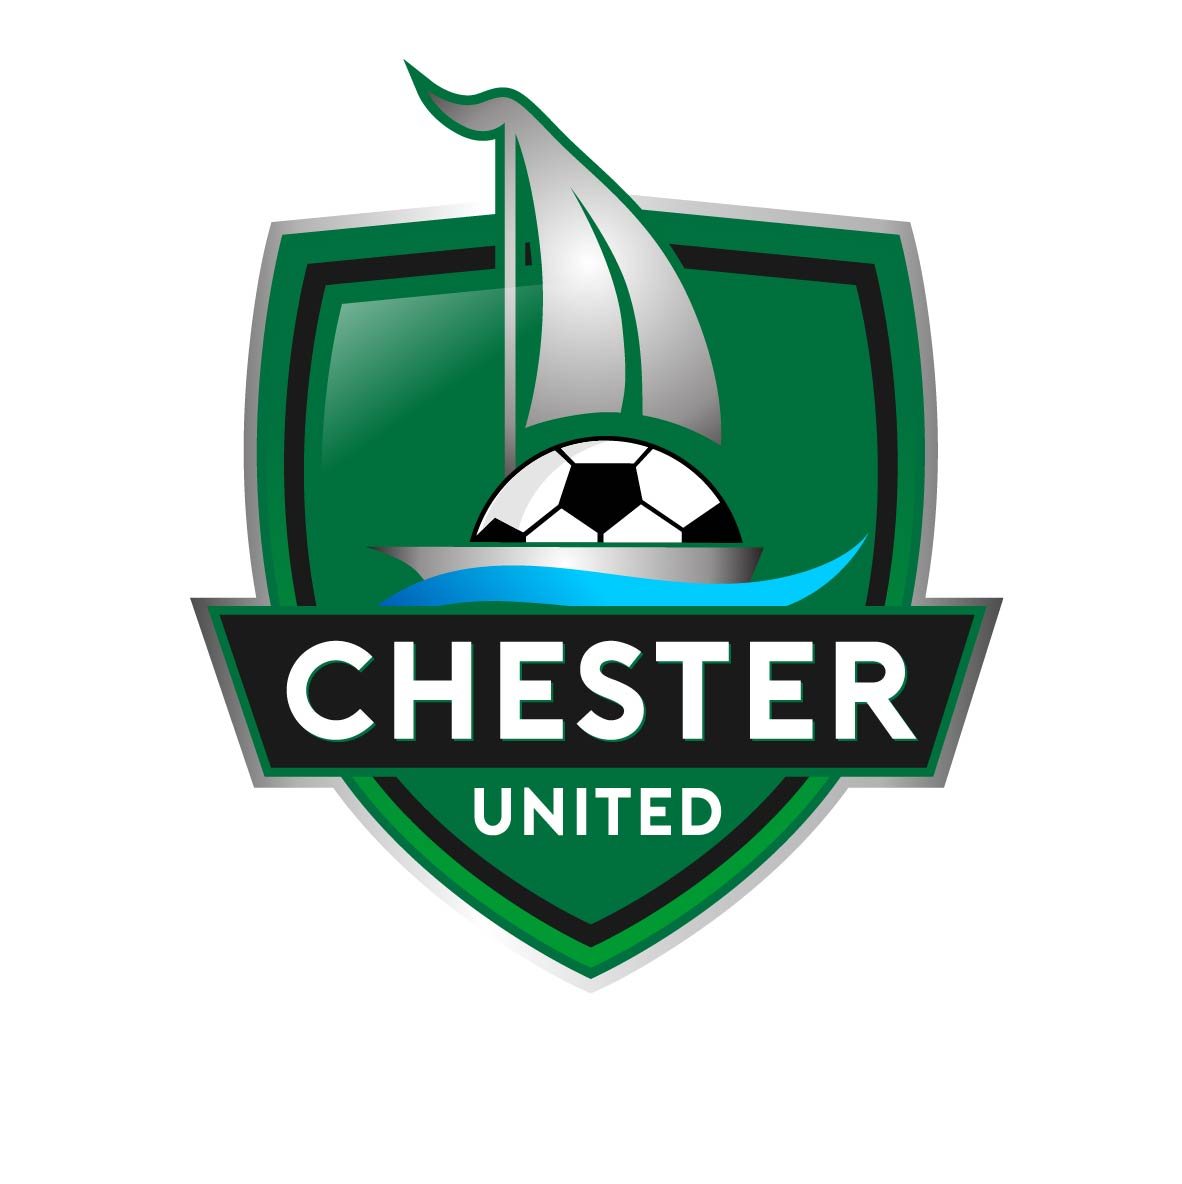 Chester United